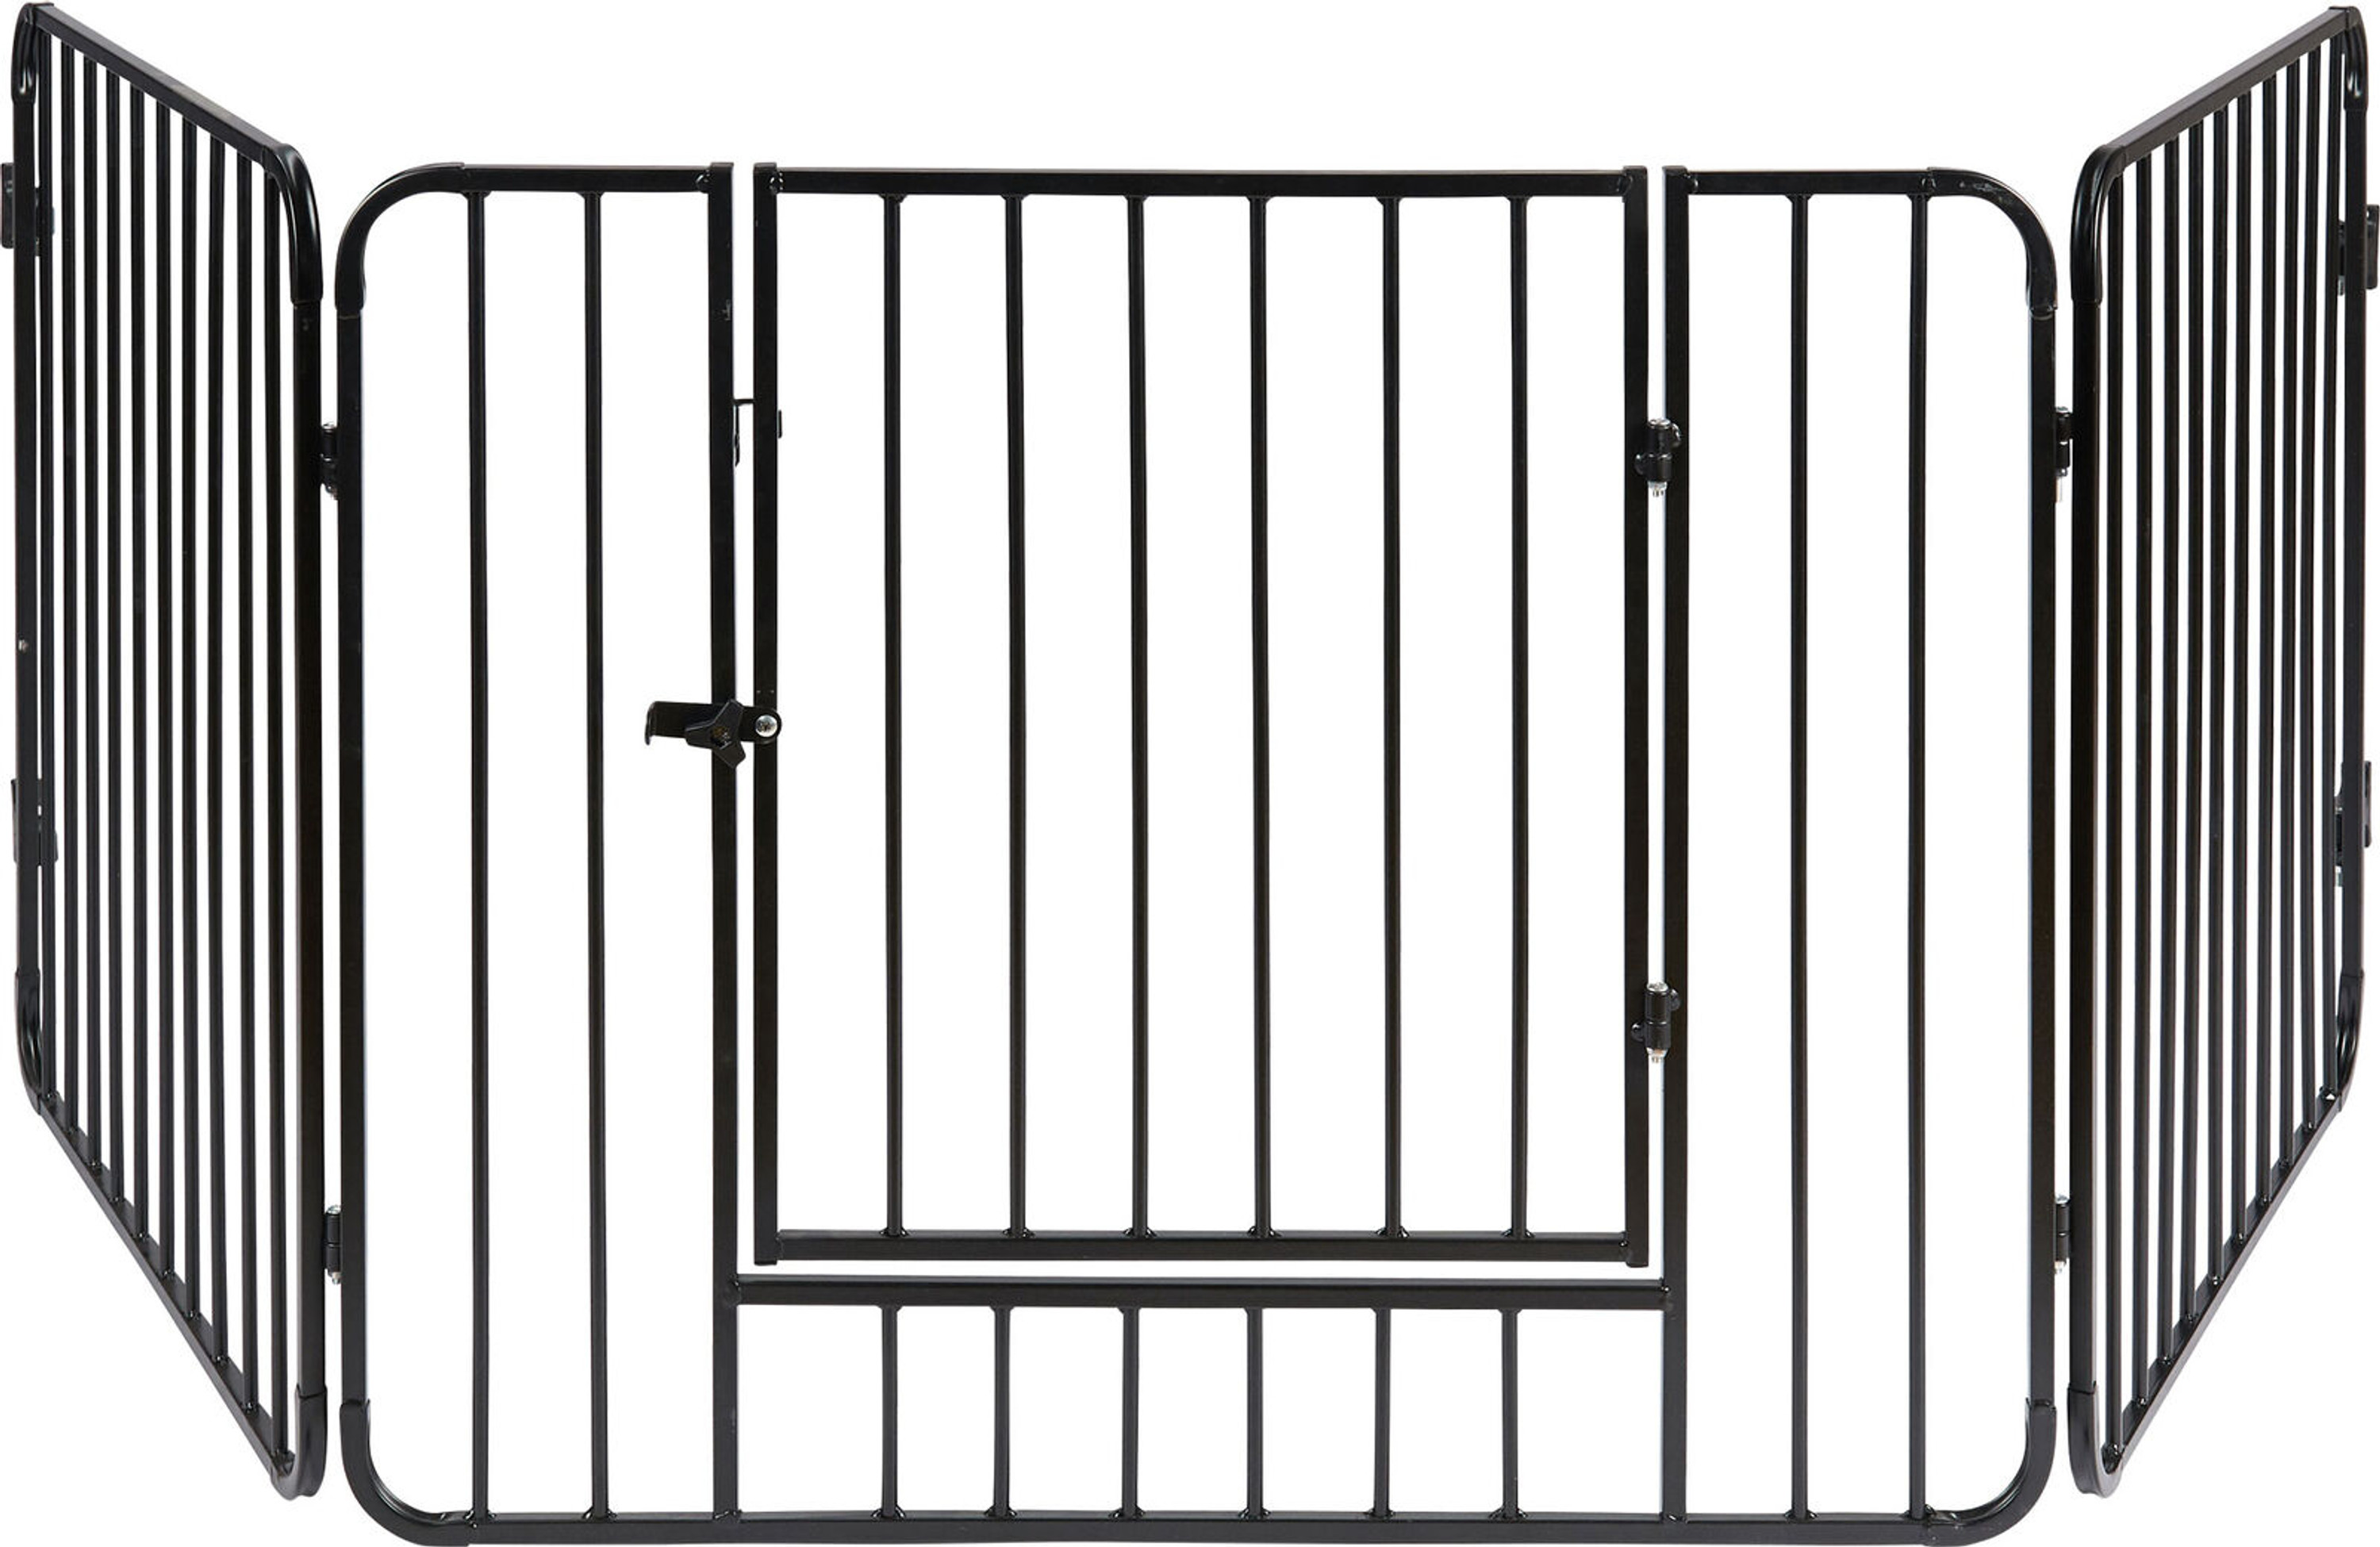 ib style® Blake fire guard hearth gate safety gate door with safety lock  235cn